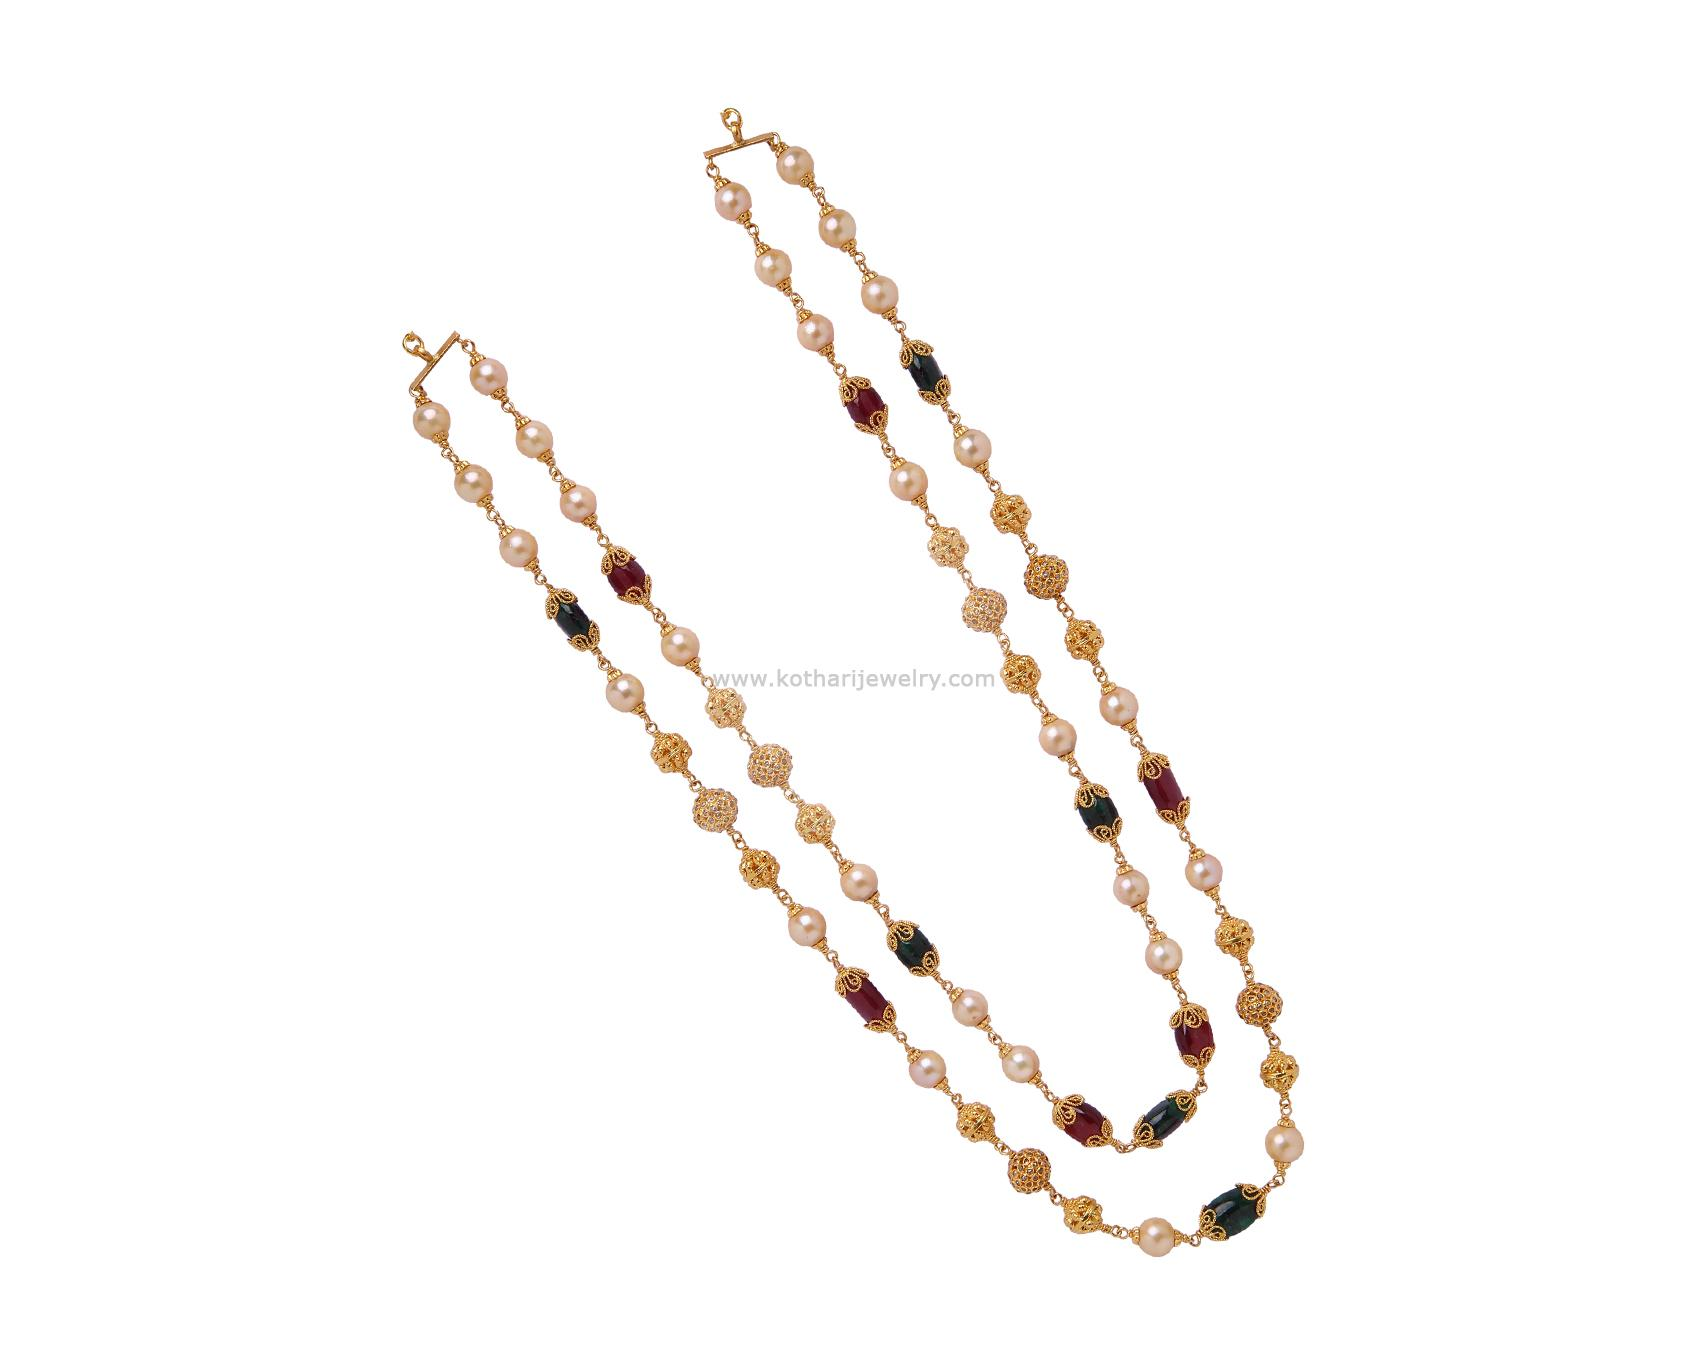 men jewellery ladies number gold category webstore necklaces for recipient chains samuel s chain him curb l h product